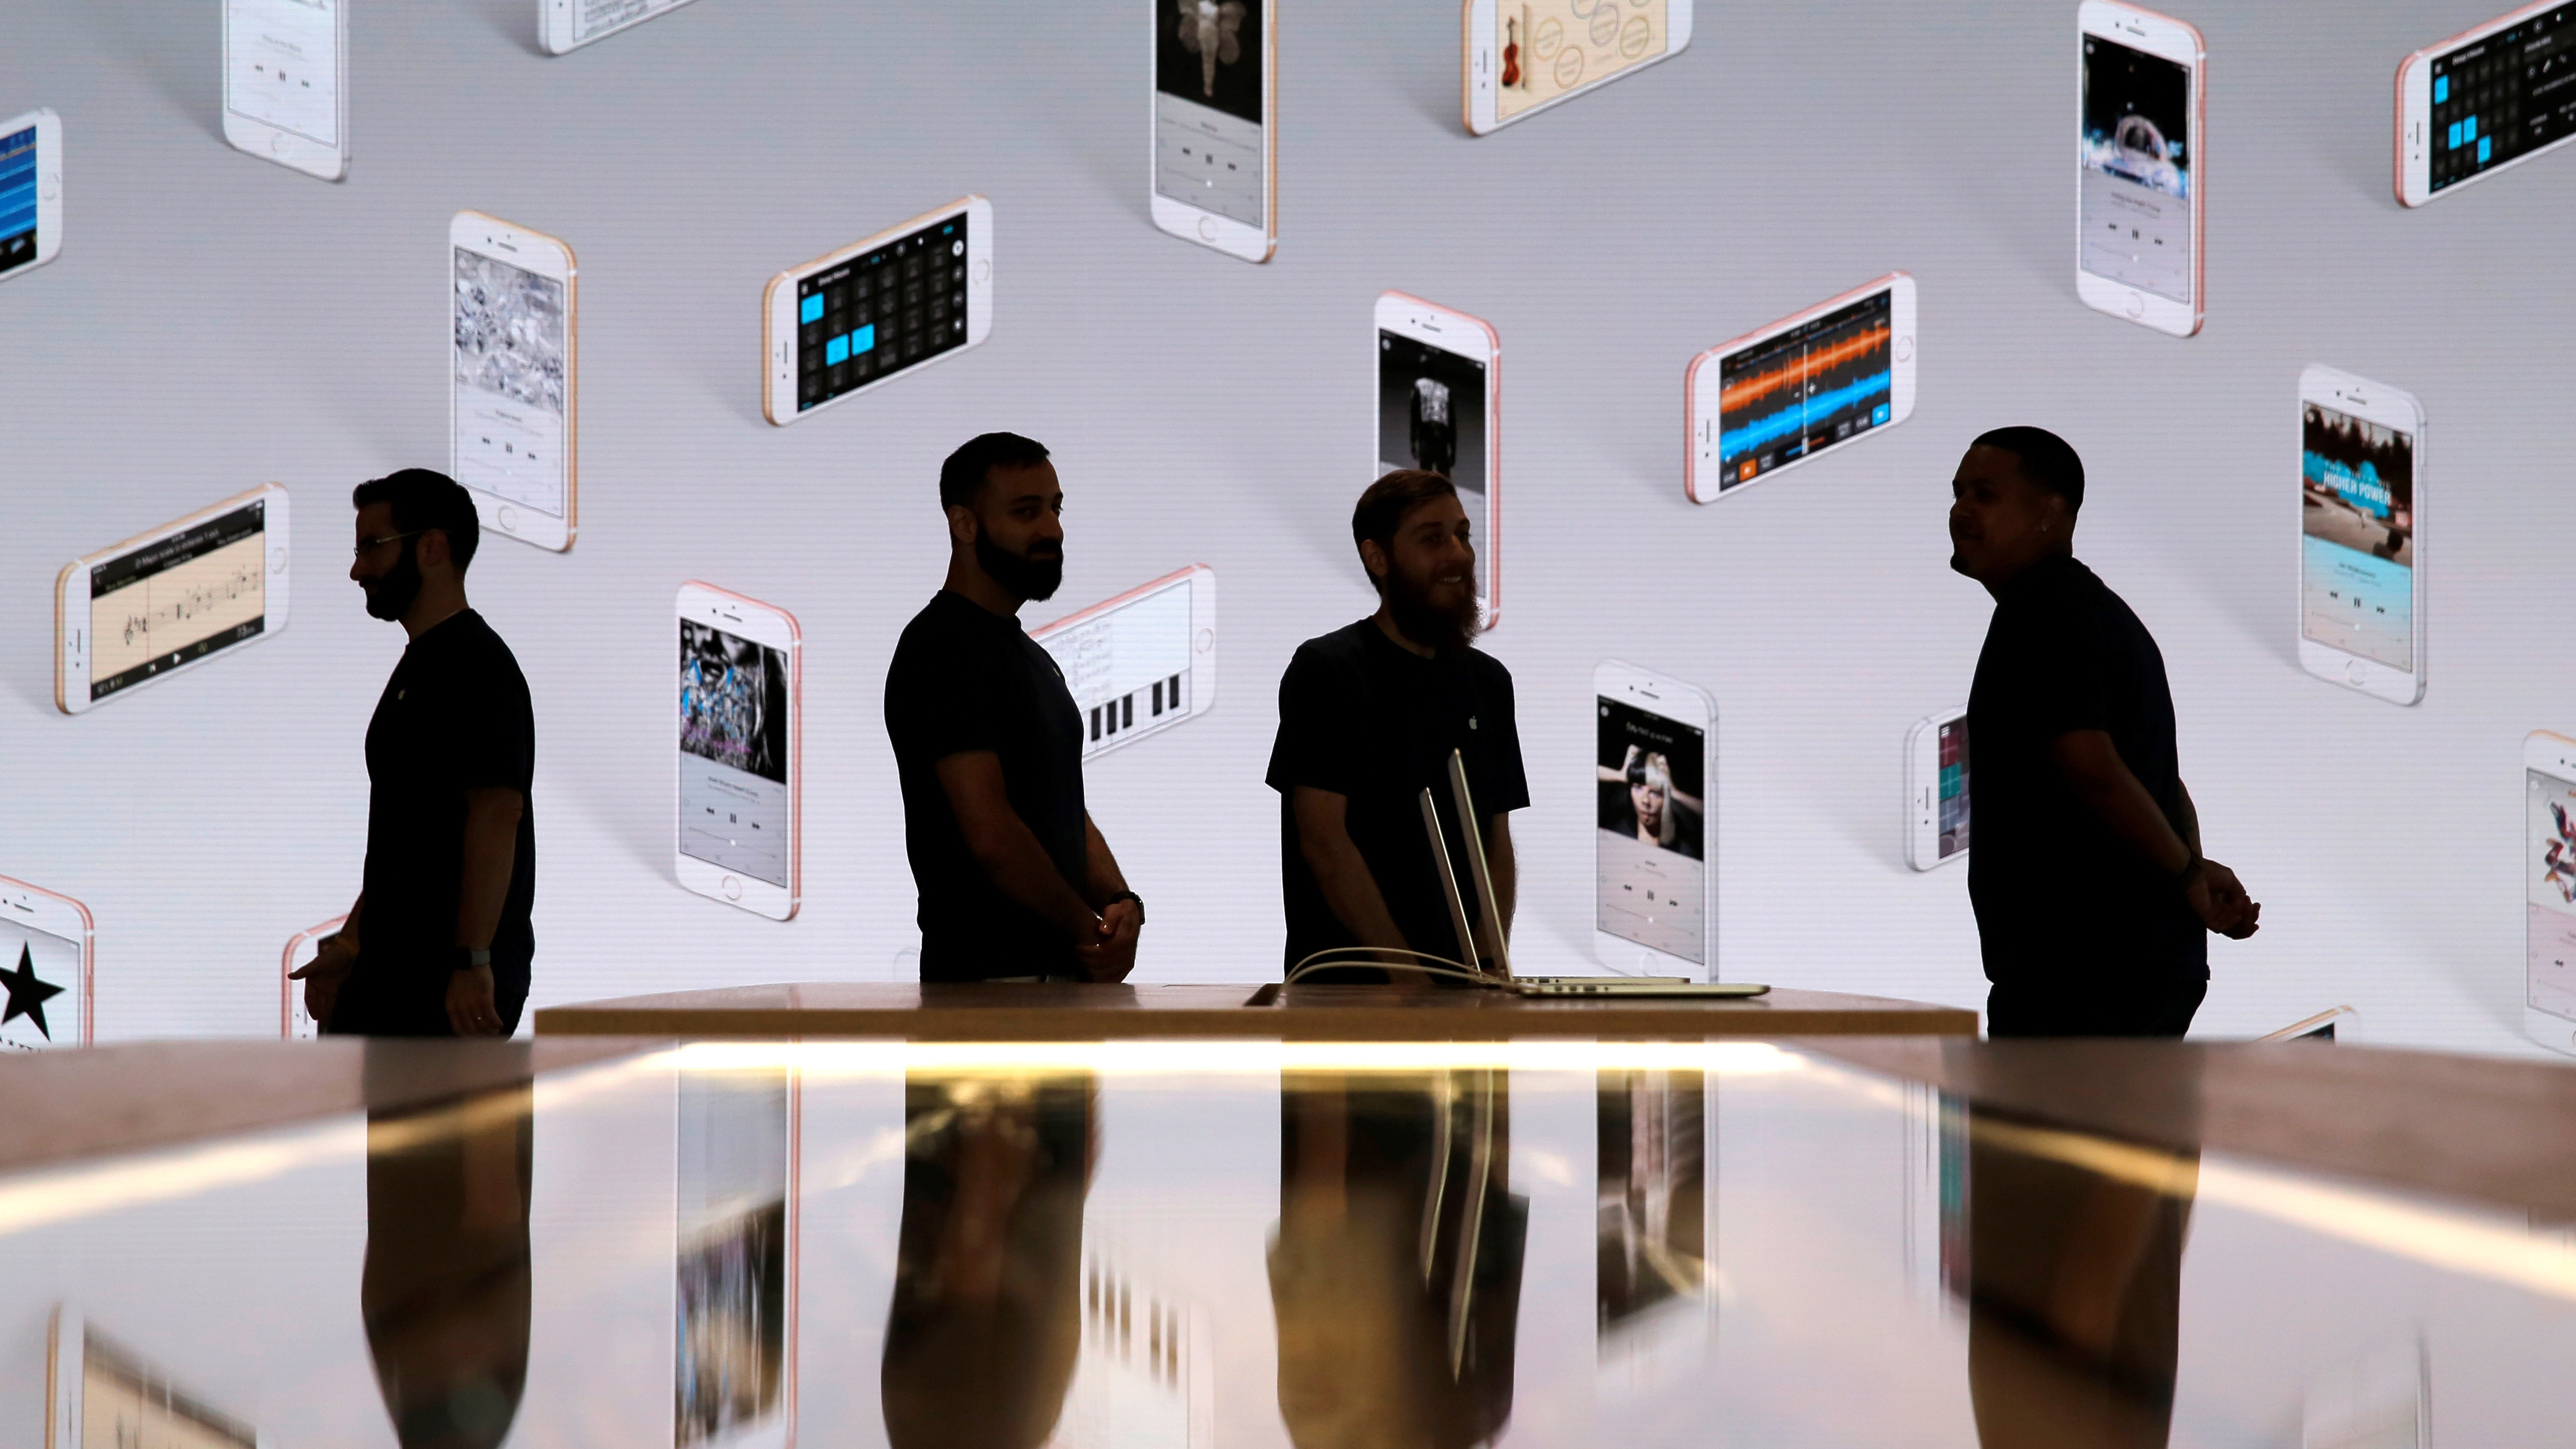 Store employees stand in front of a screen displaying iPhones during a preview event at the new Apple Store Williamsburg in Brooklyn, New York, U.S., July 28, 2016.  REUTERS/Andrew Kelly  - RTSK4MH